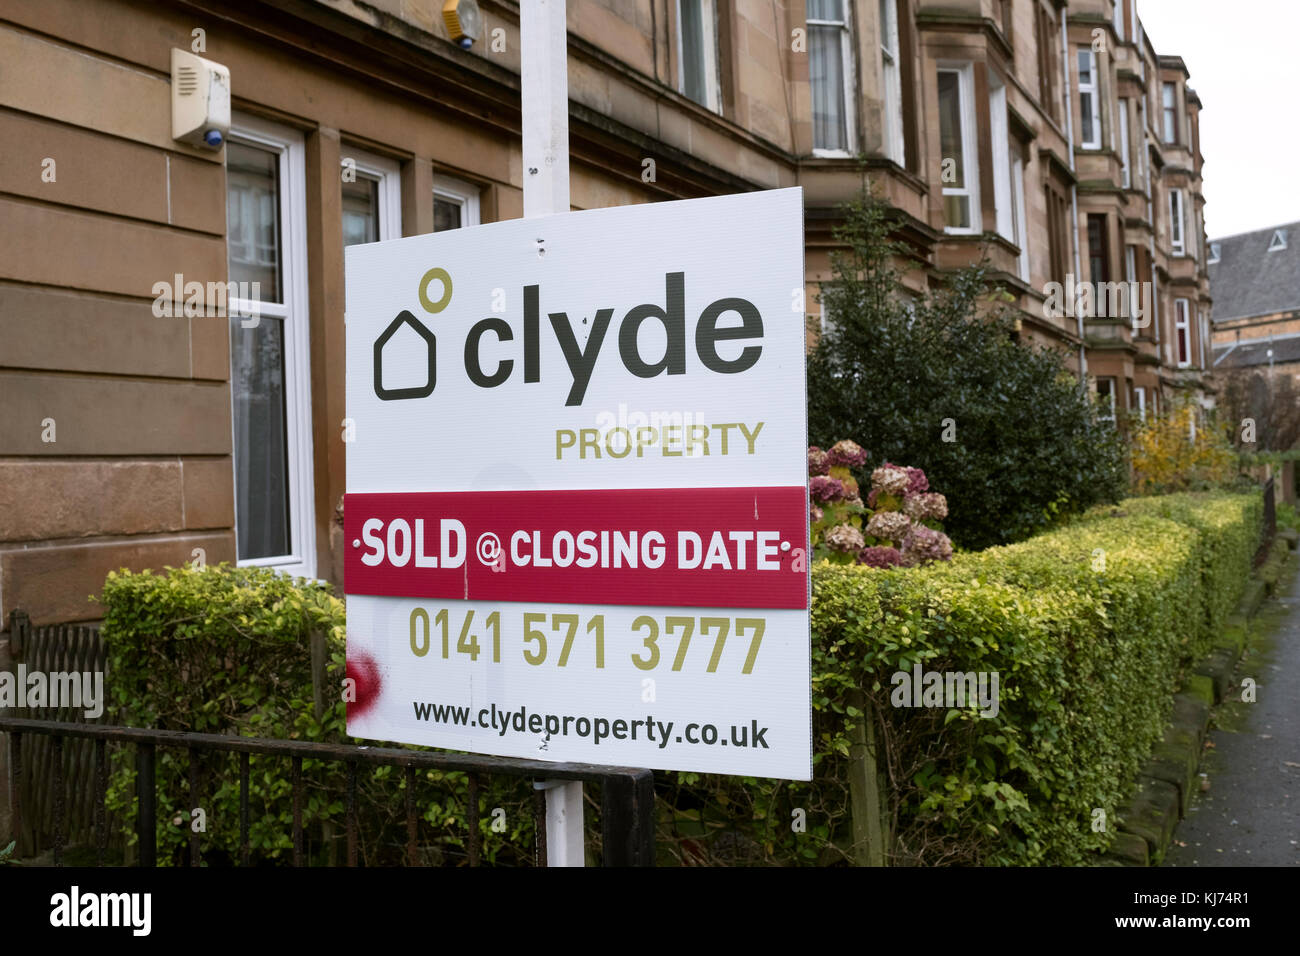 Sold sign outside tenement apartment building in Govanhill district of Glasgow, Scotland, United Kingdom - Stock Image